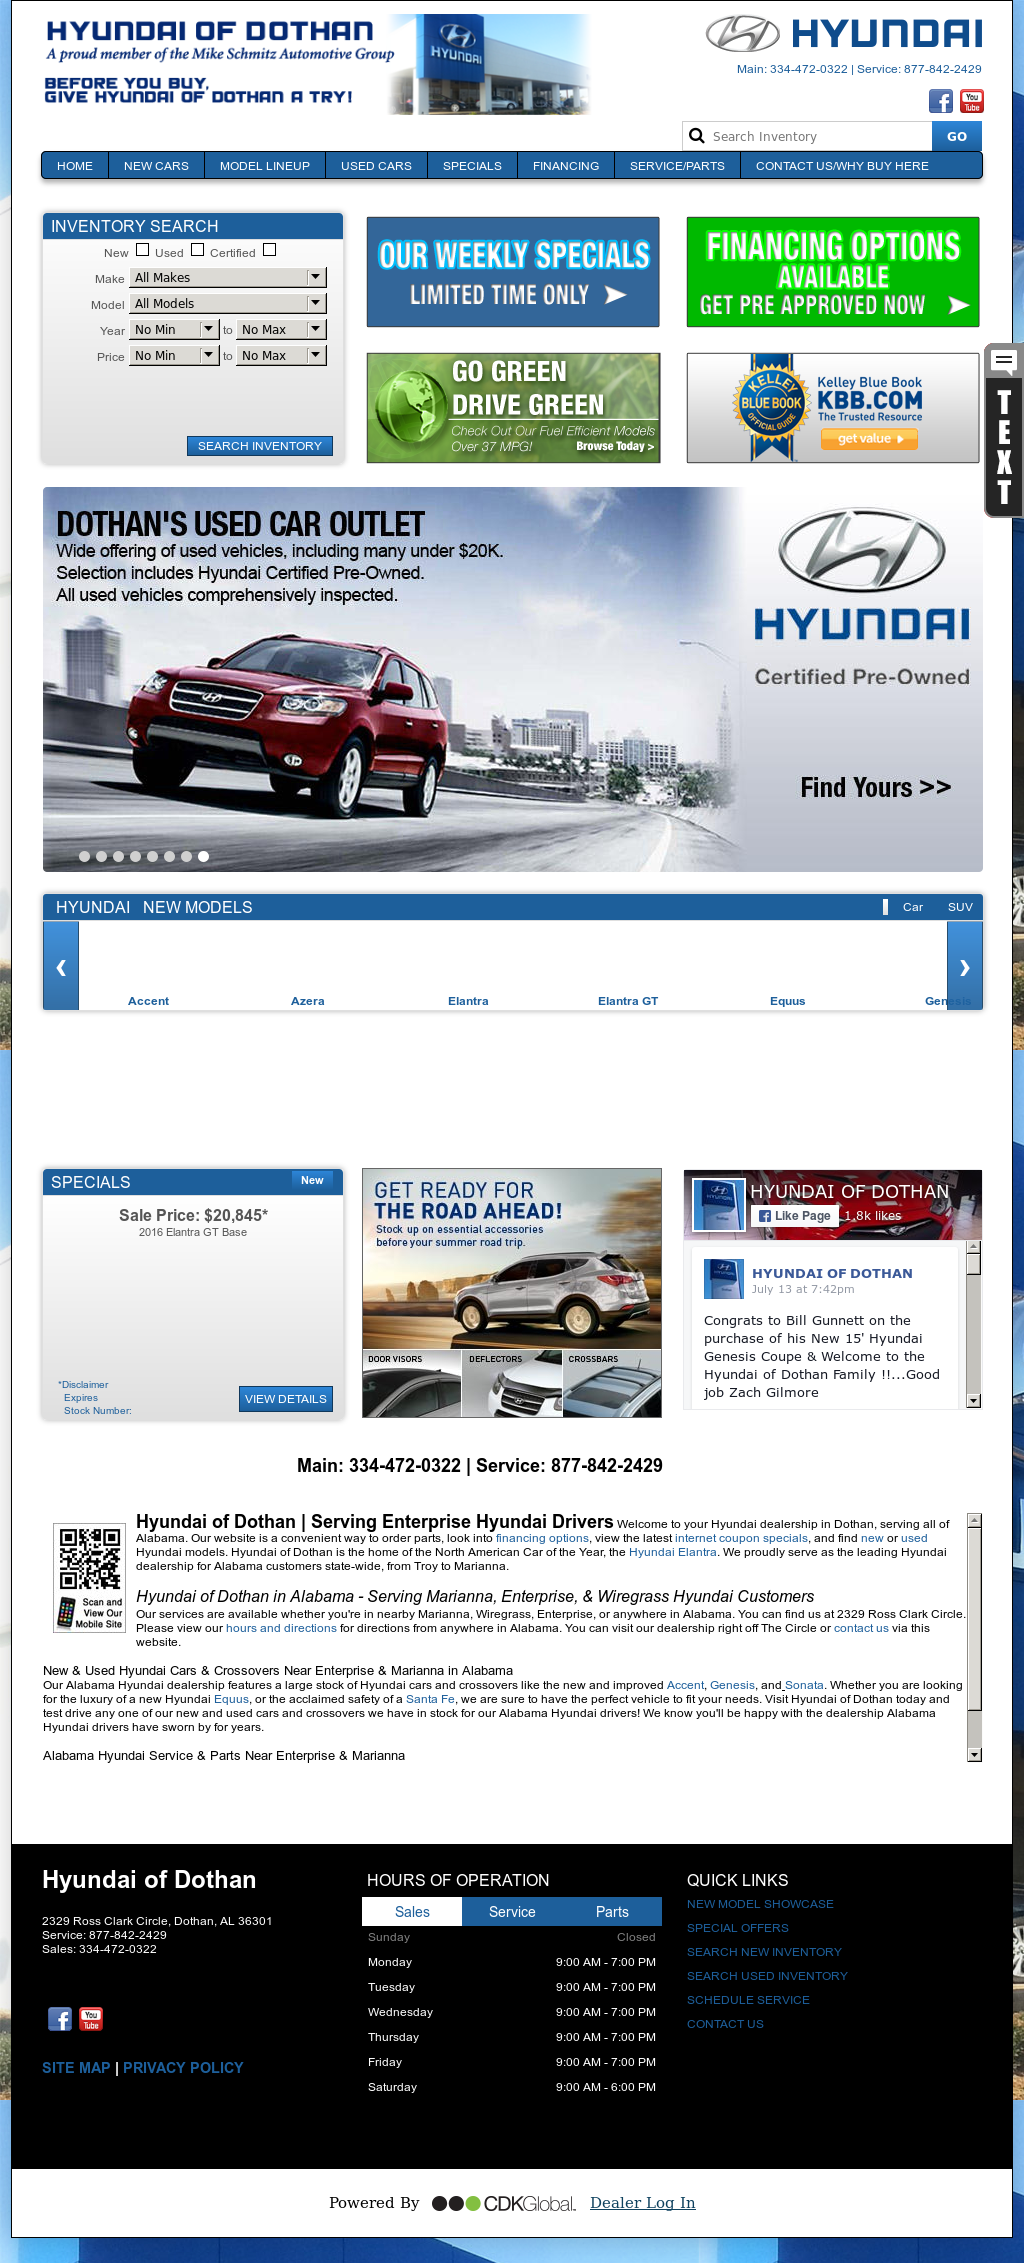 Hyundai Of Dothan >> Hyundai Of Dothan Competitors Revenue And Employees Owler